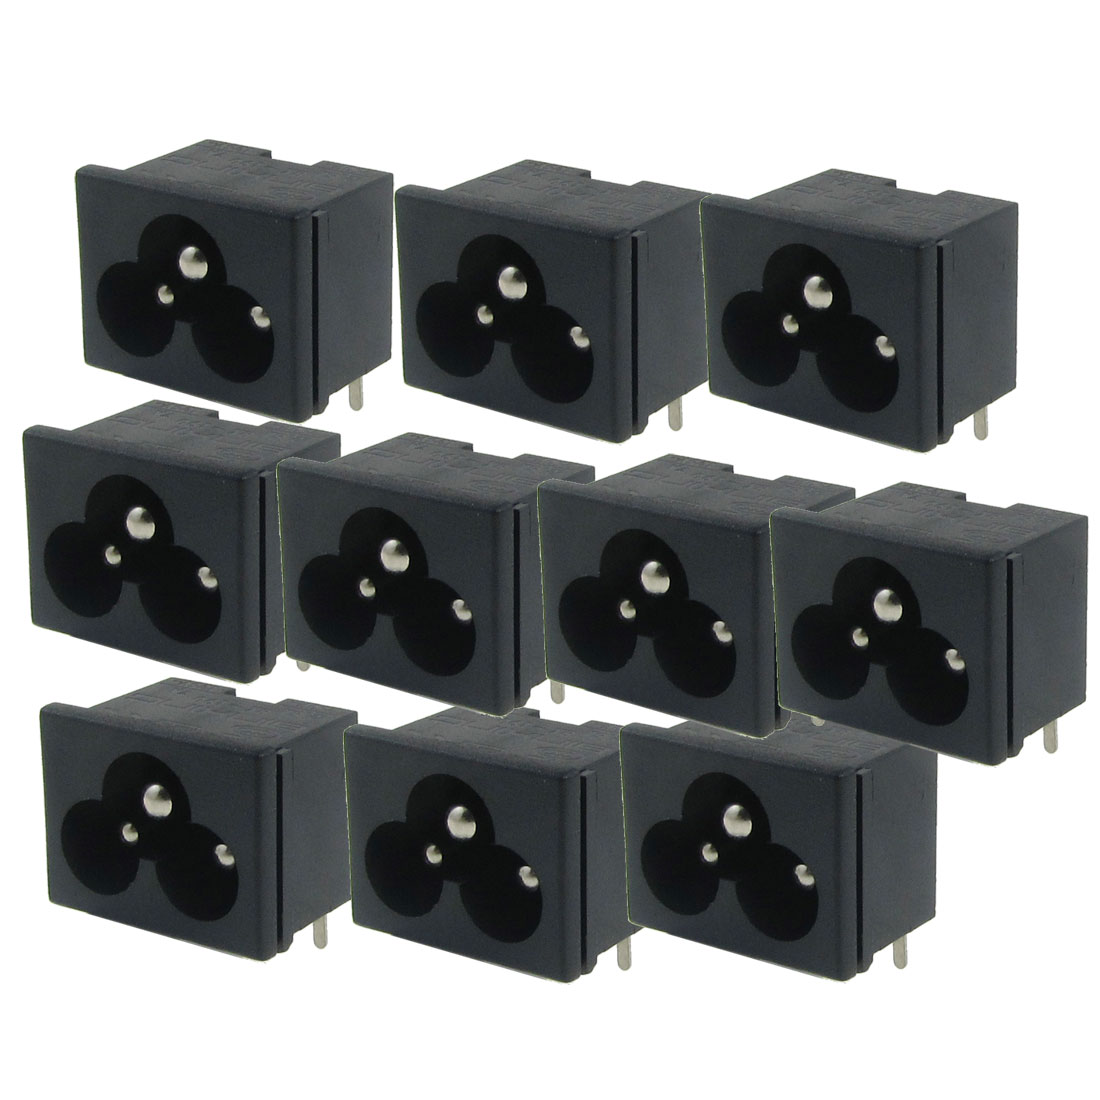 Electrical Black IEC C6 Power Supply AC 7A 125V Adapter 8 Pcs